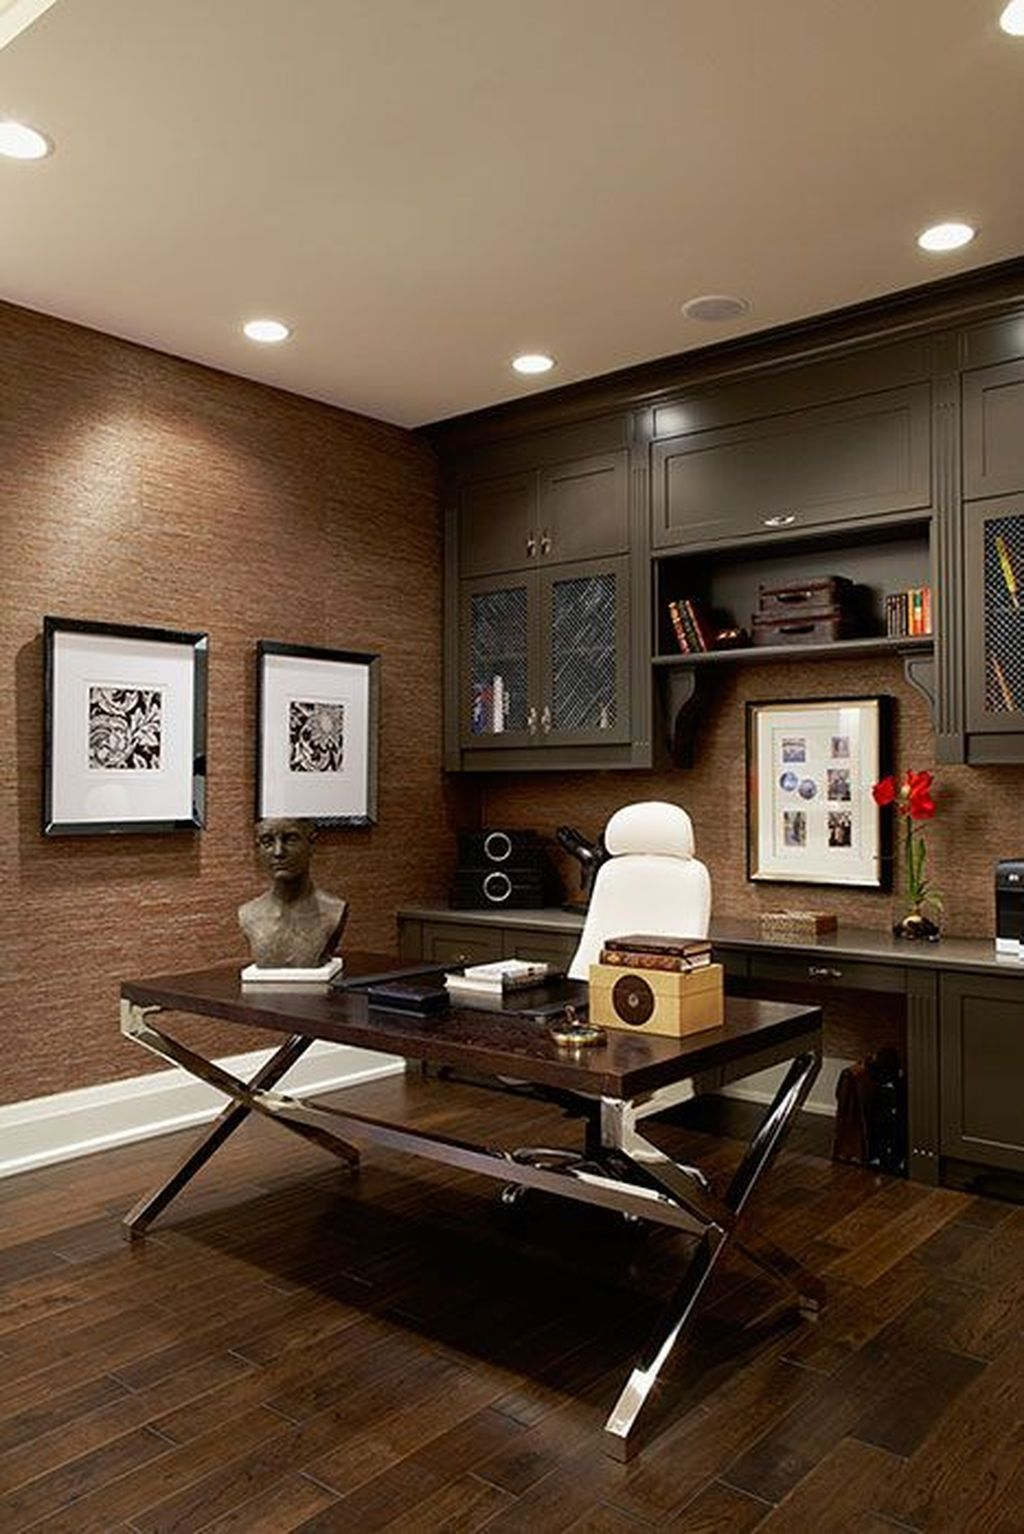 Impressive 34 Stunning Home Office Design Layout Ideas Home